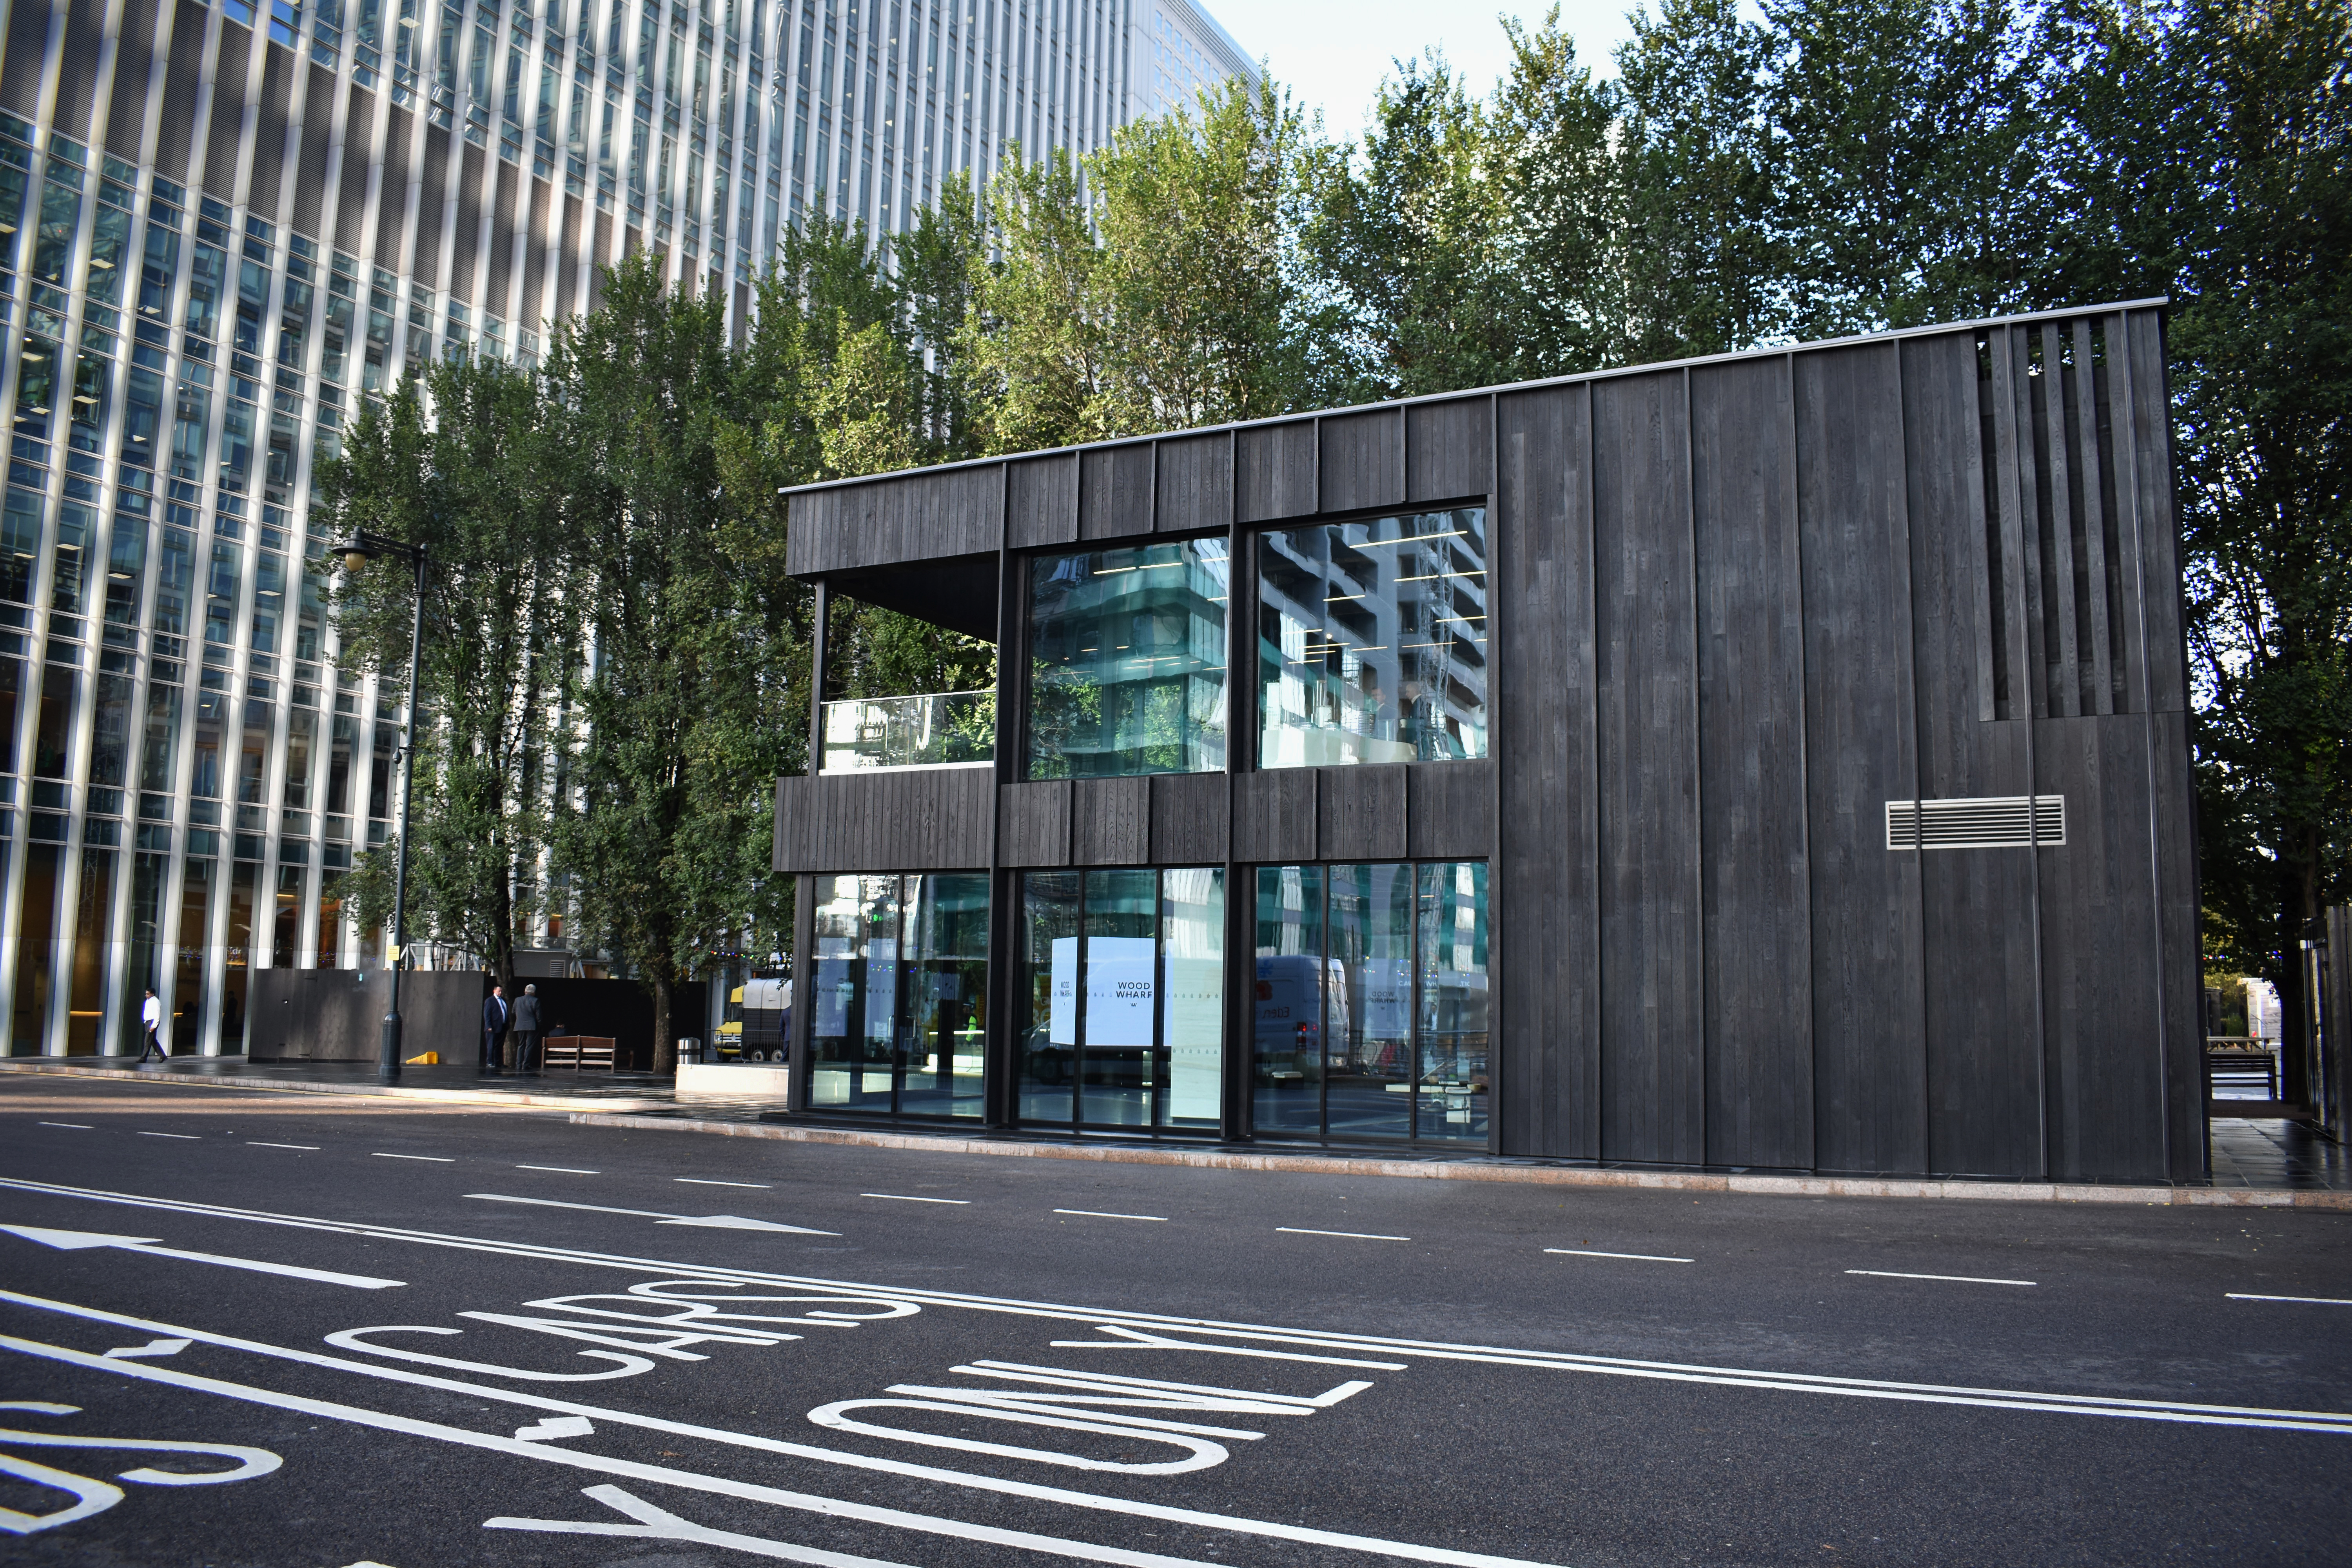 Shou Sugi Ban® envelopes building in Canary Warf